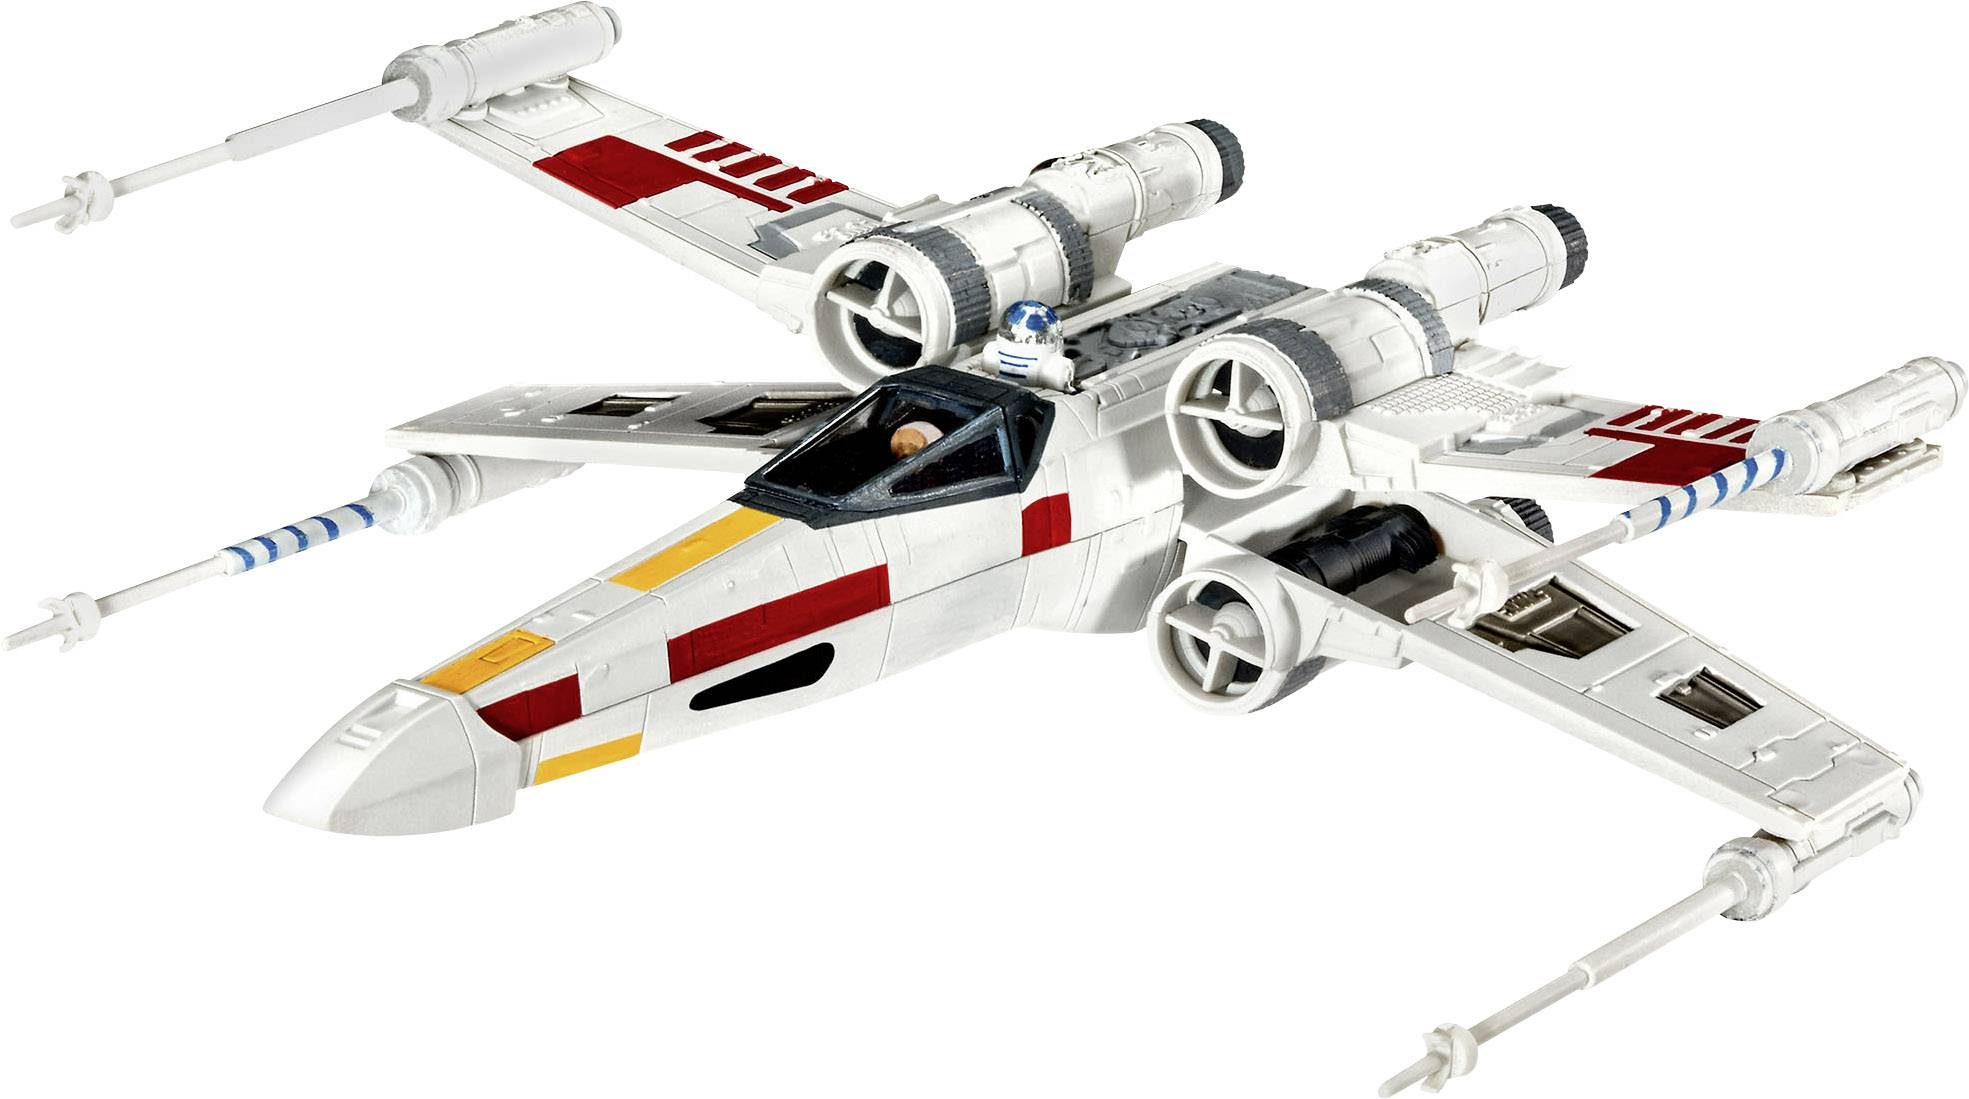 Star Wars X-Wing Fighter, sci-fi model, stavebnica Revell 03601